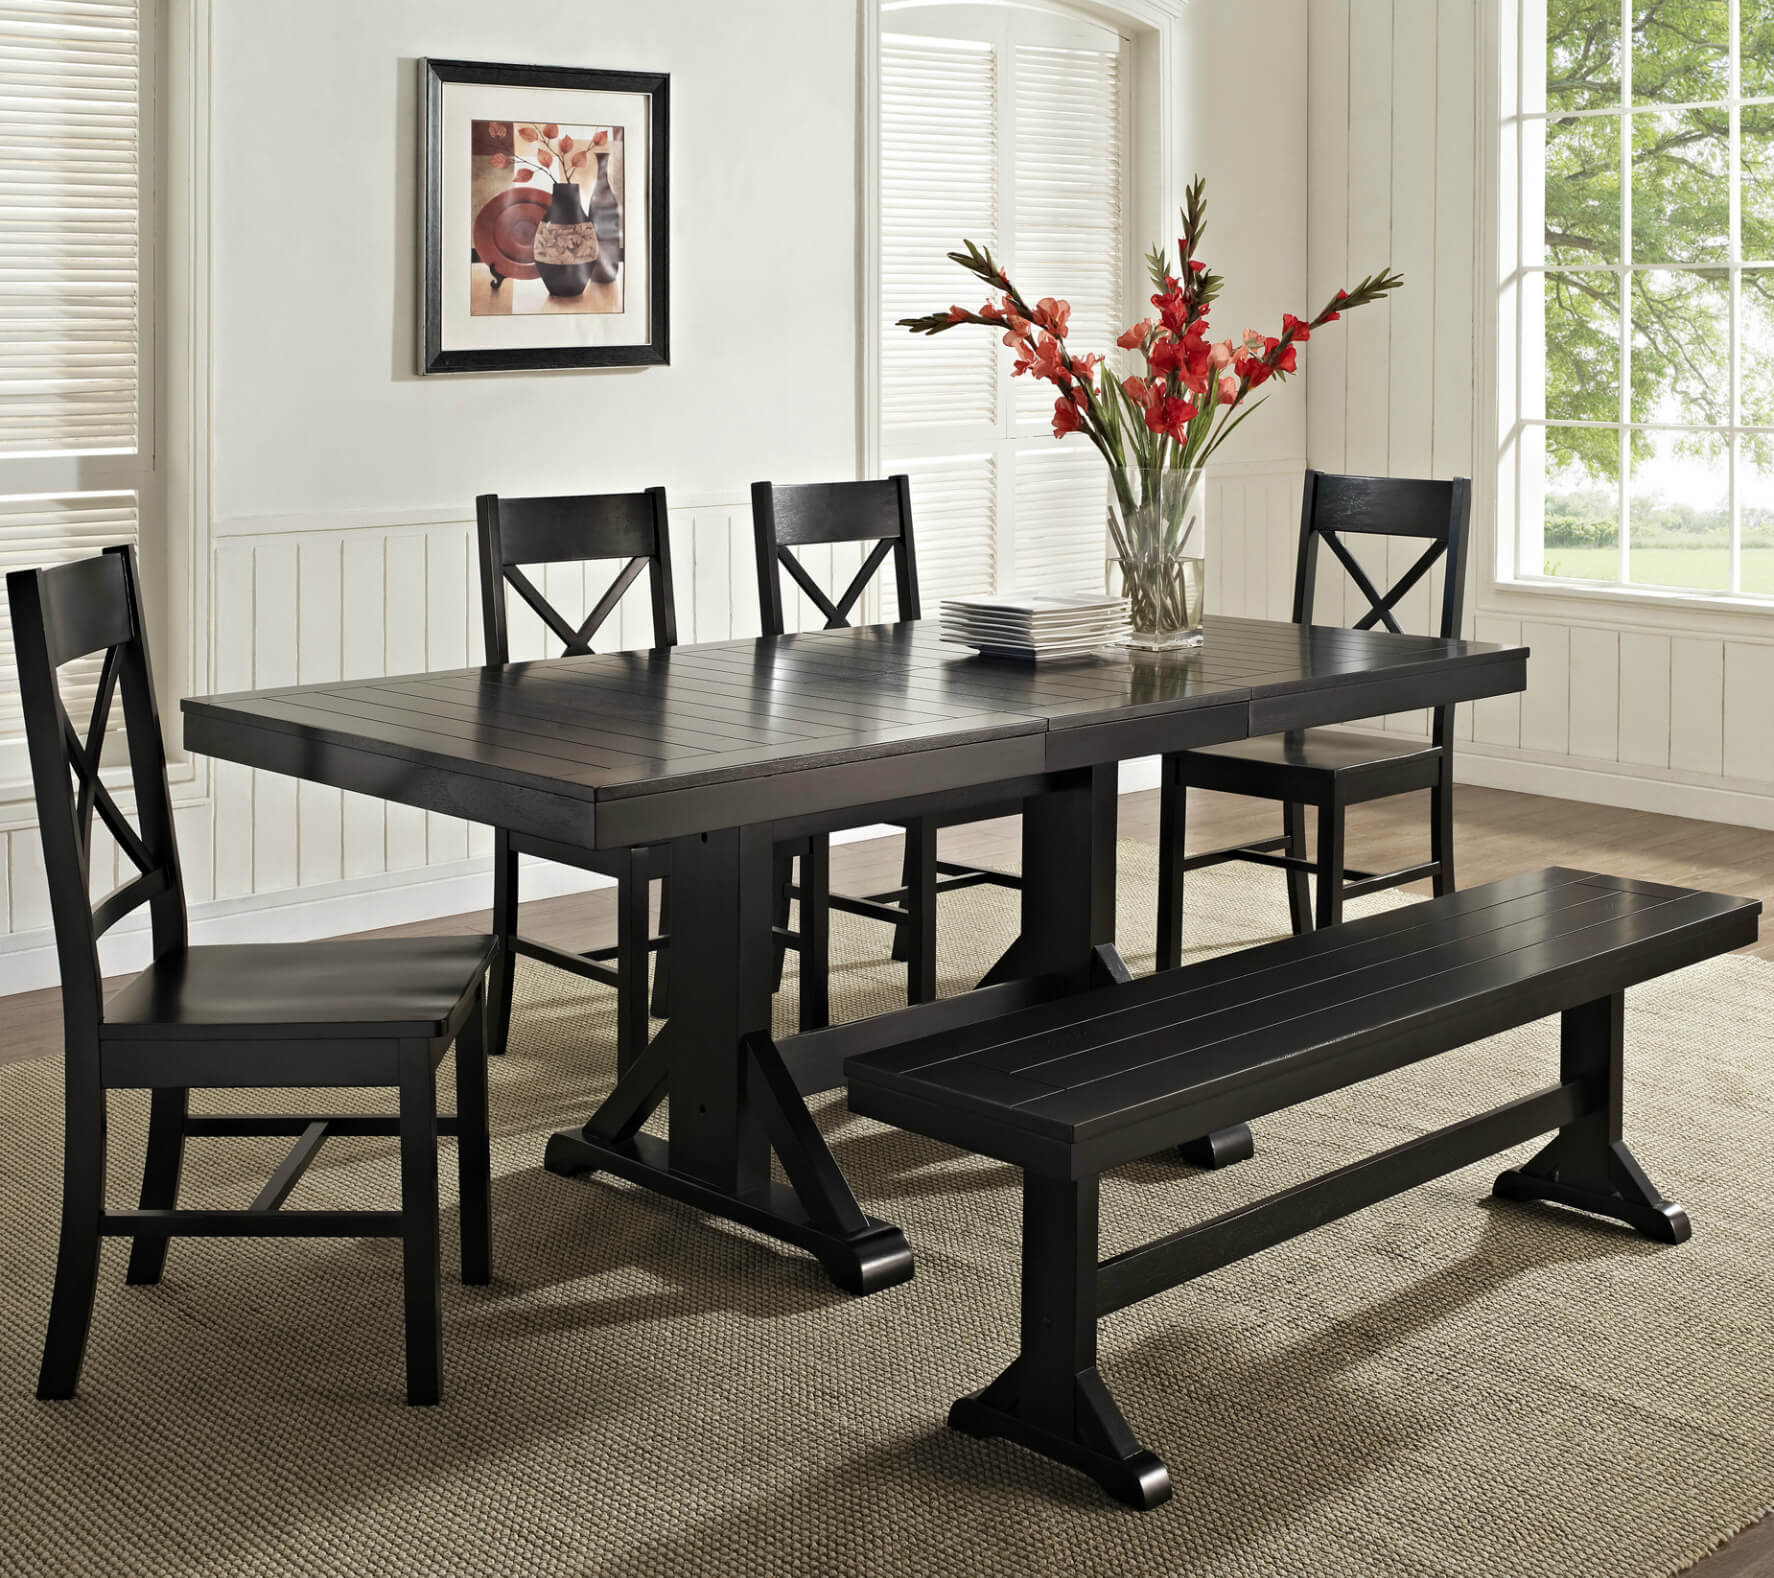 Dining Room Sets: 26 Dining Room Sets (Big And Small) With Bench Seating (2019